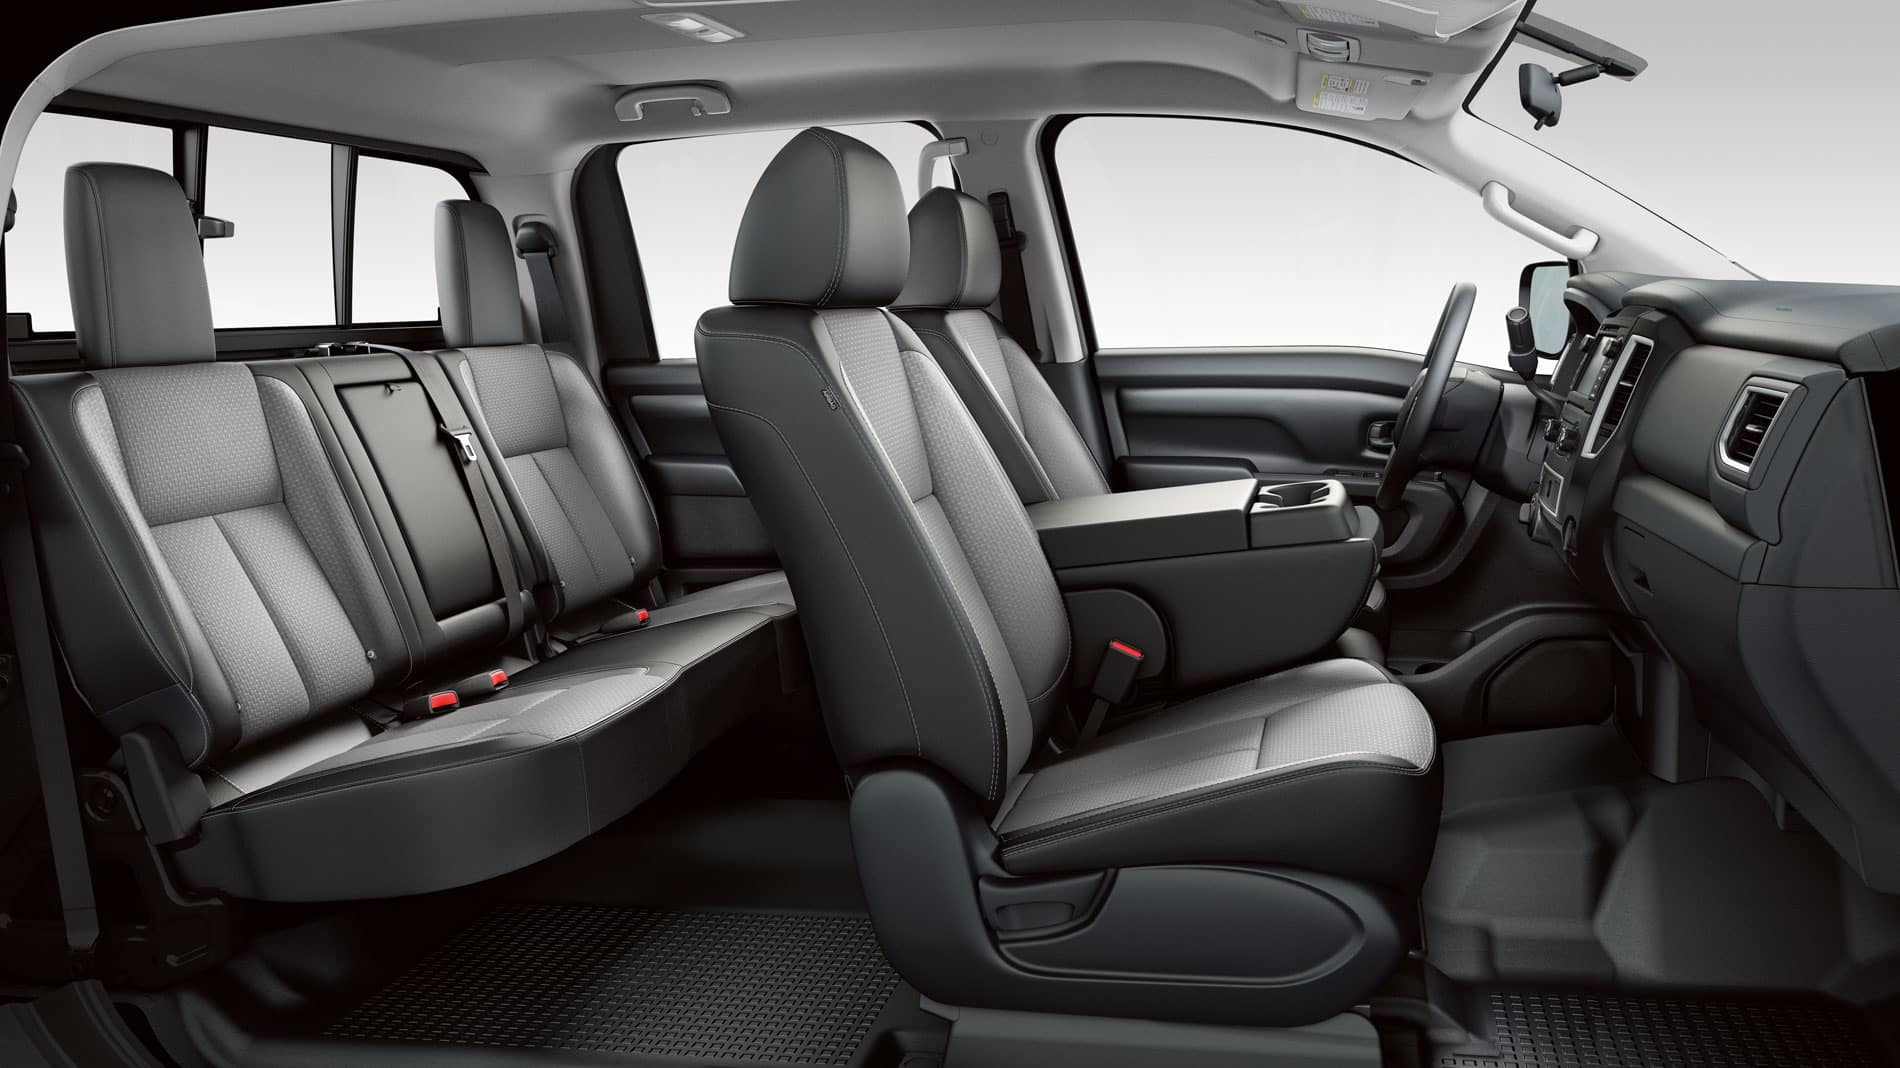 hight resolution of inside the 2019 nissan titan and titan xd share identical seating measurements in their single cab setups these pickups have seating for up to three in